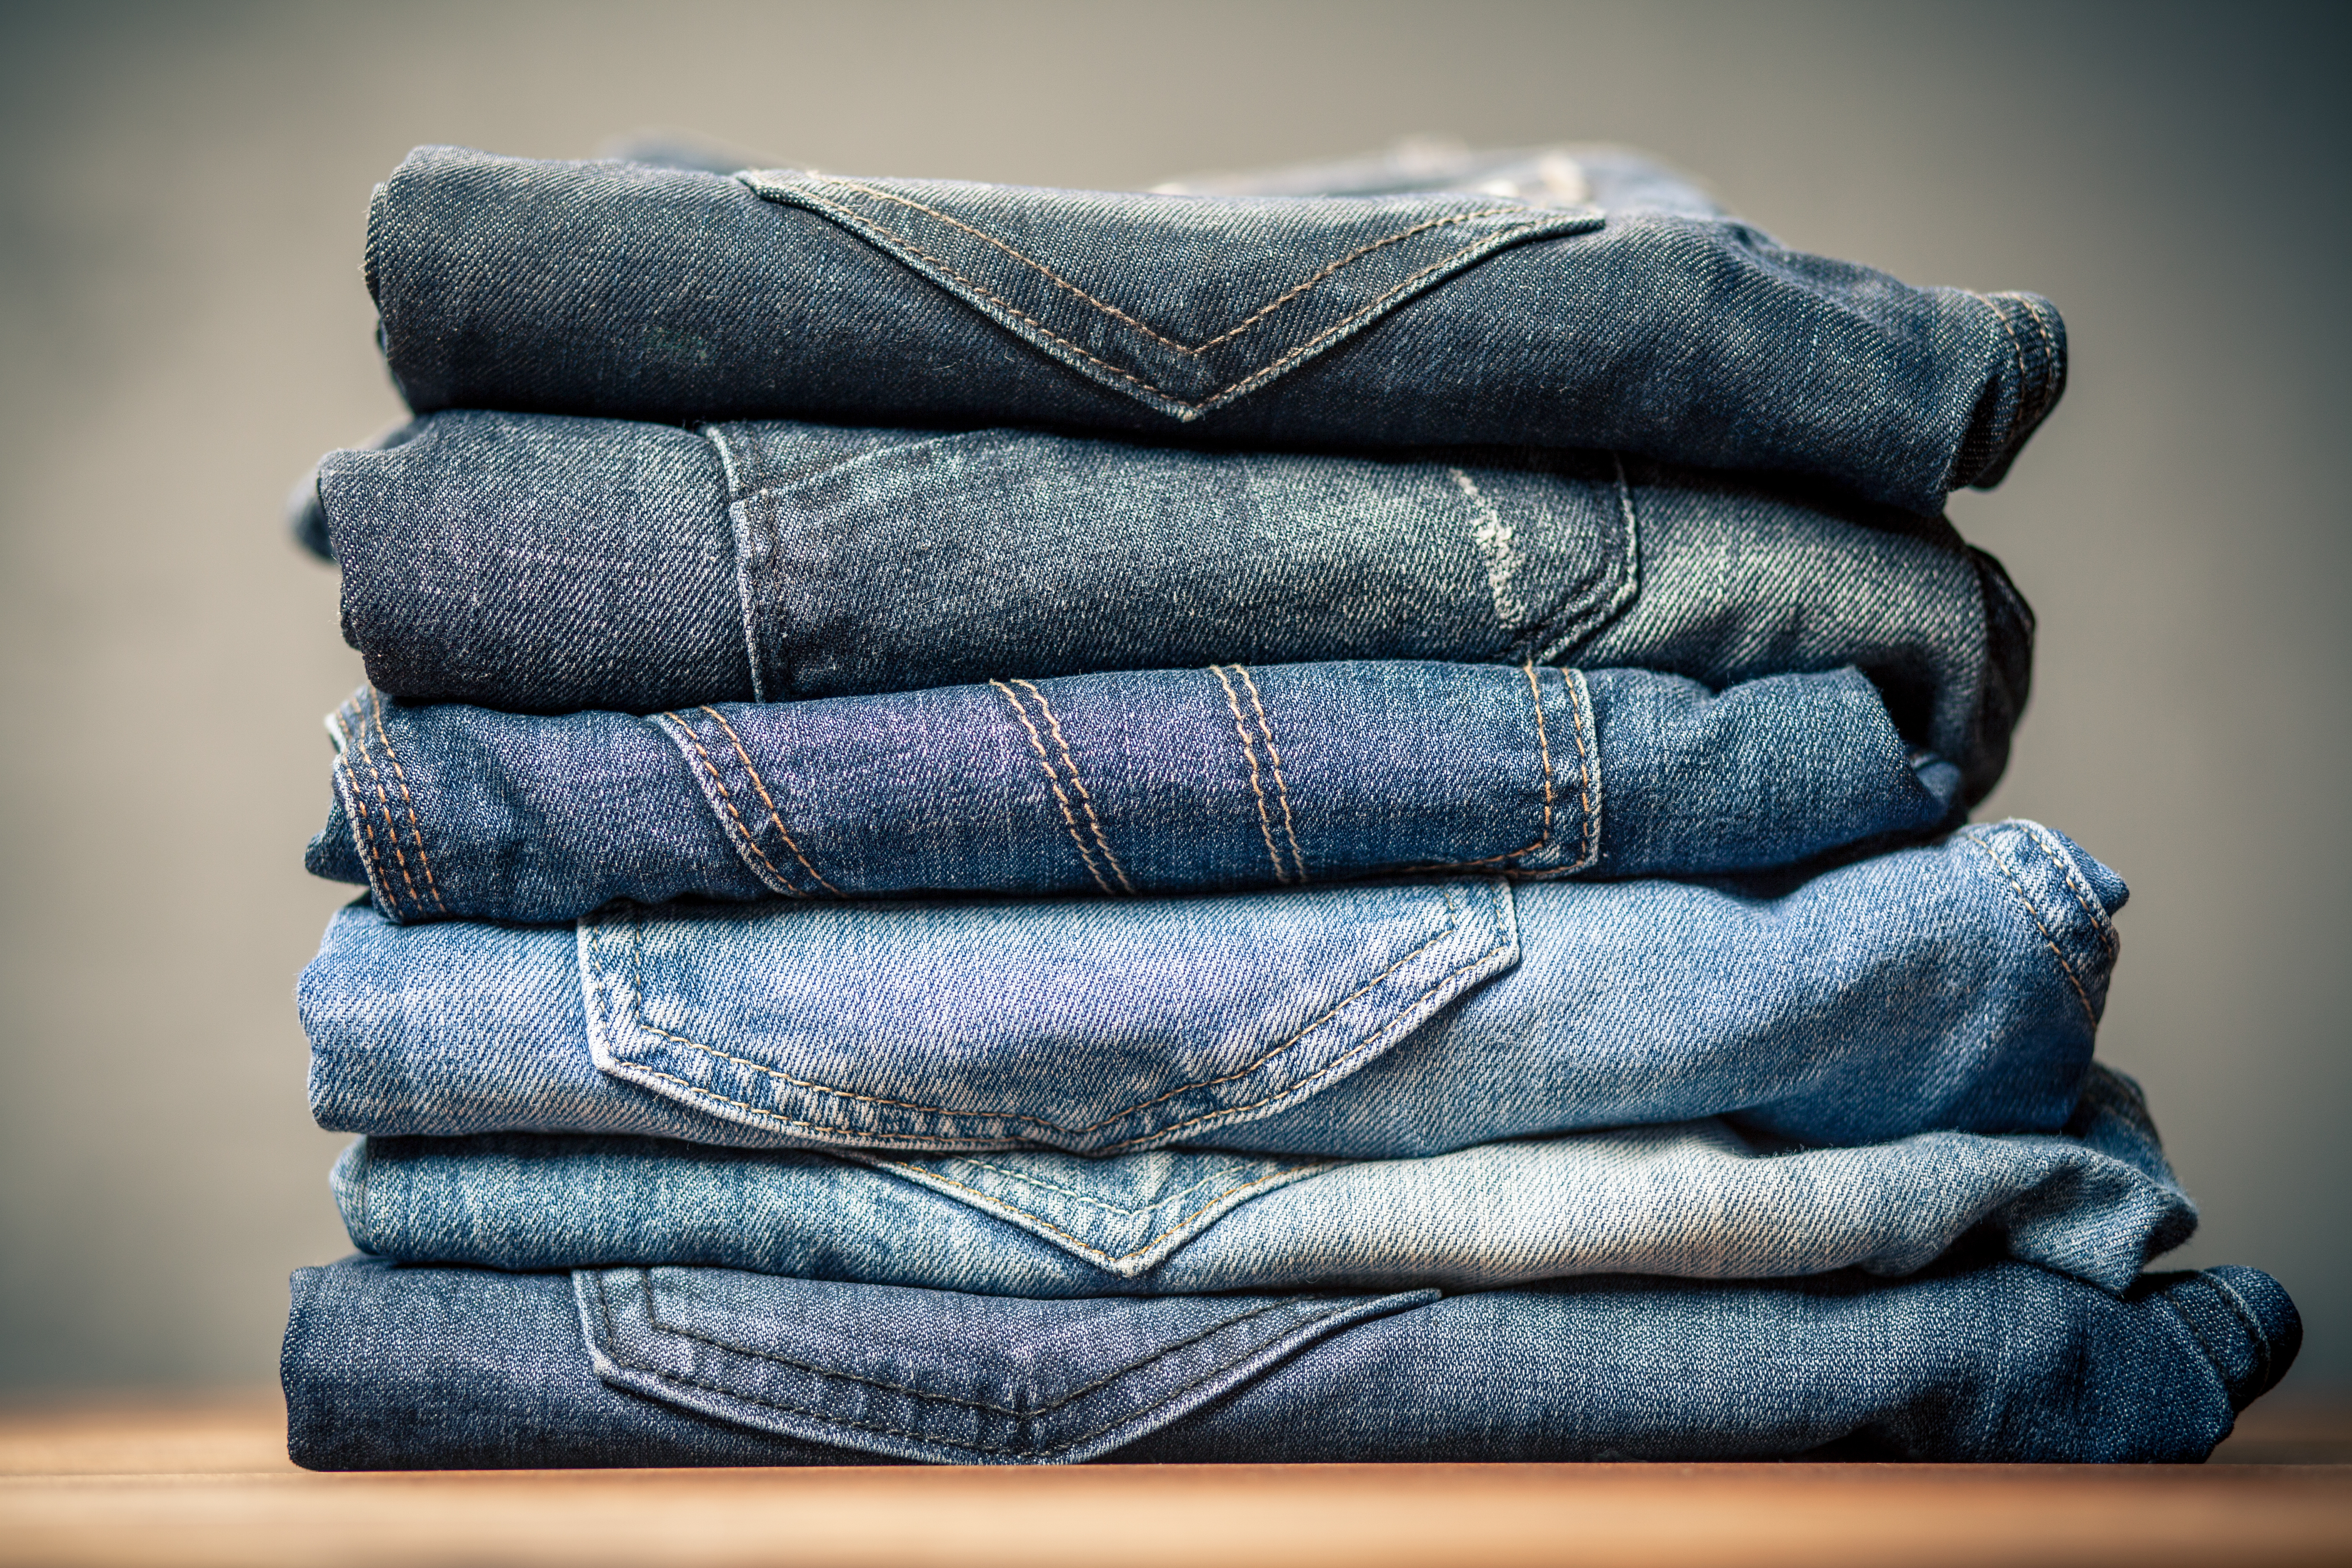 Jeans, multiple experts advise, should be washed in cold water with a mild detergent, and always air-dried.